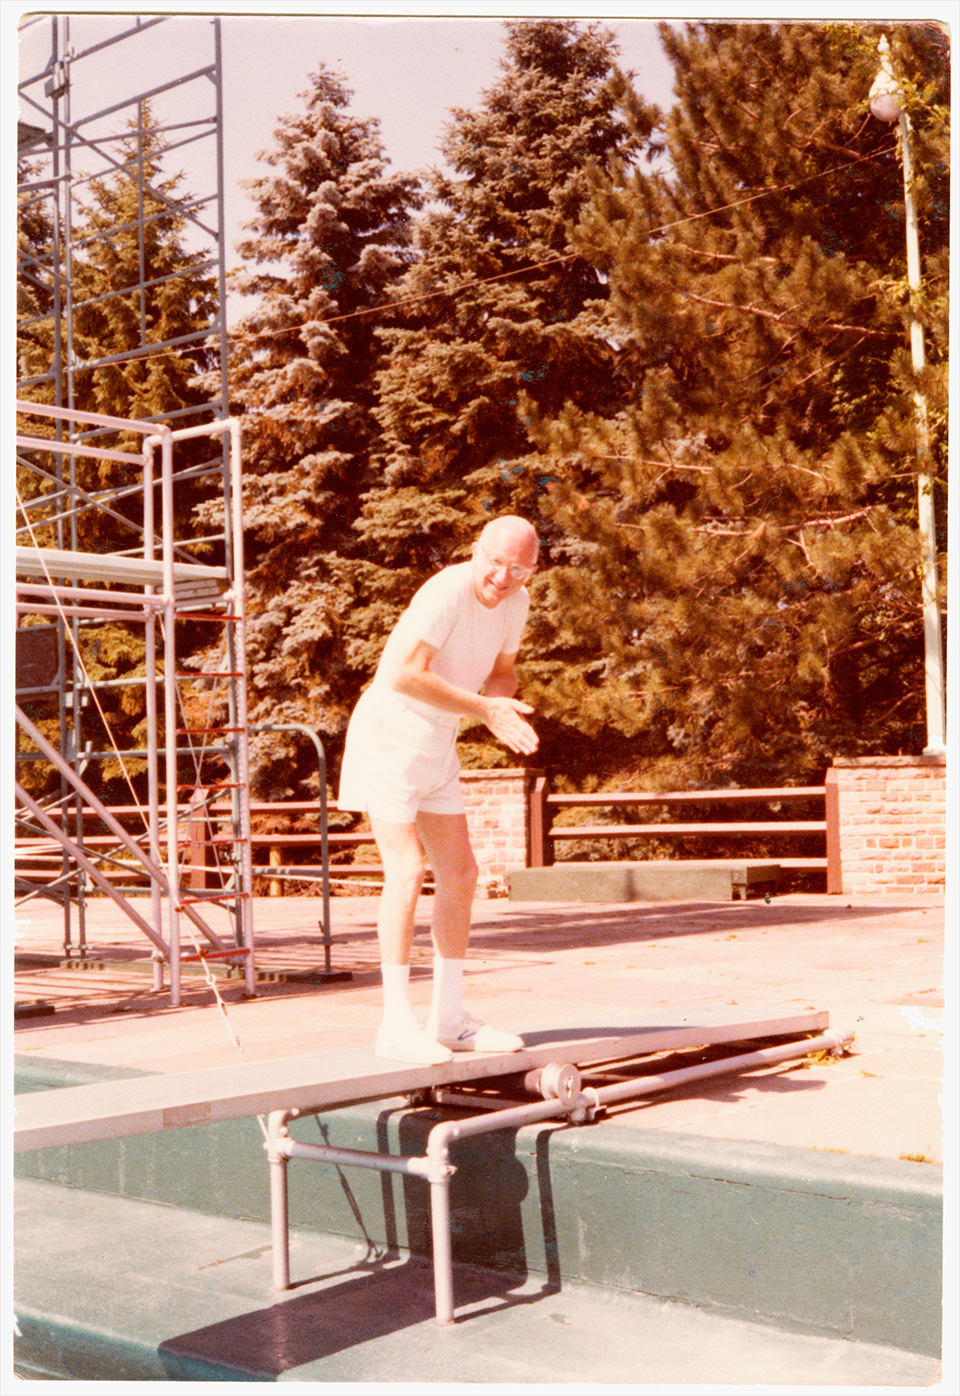 R.S. Mendelsohn standing to the side of a diving board, posing as if he is going to dive despite having socks and sneakers on.